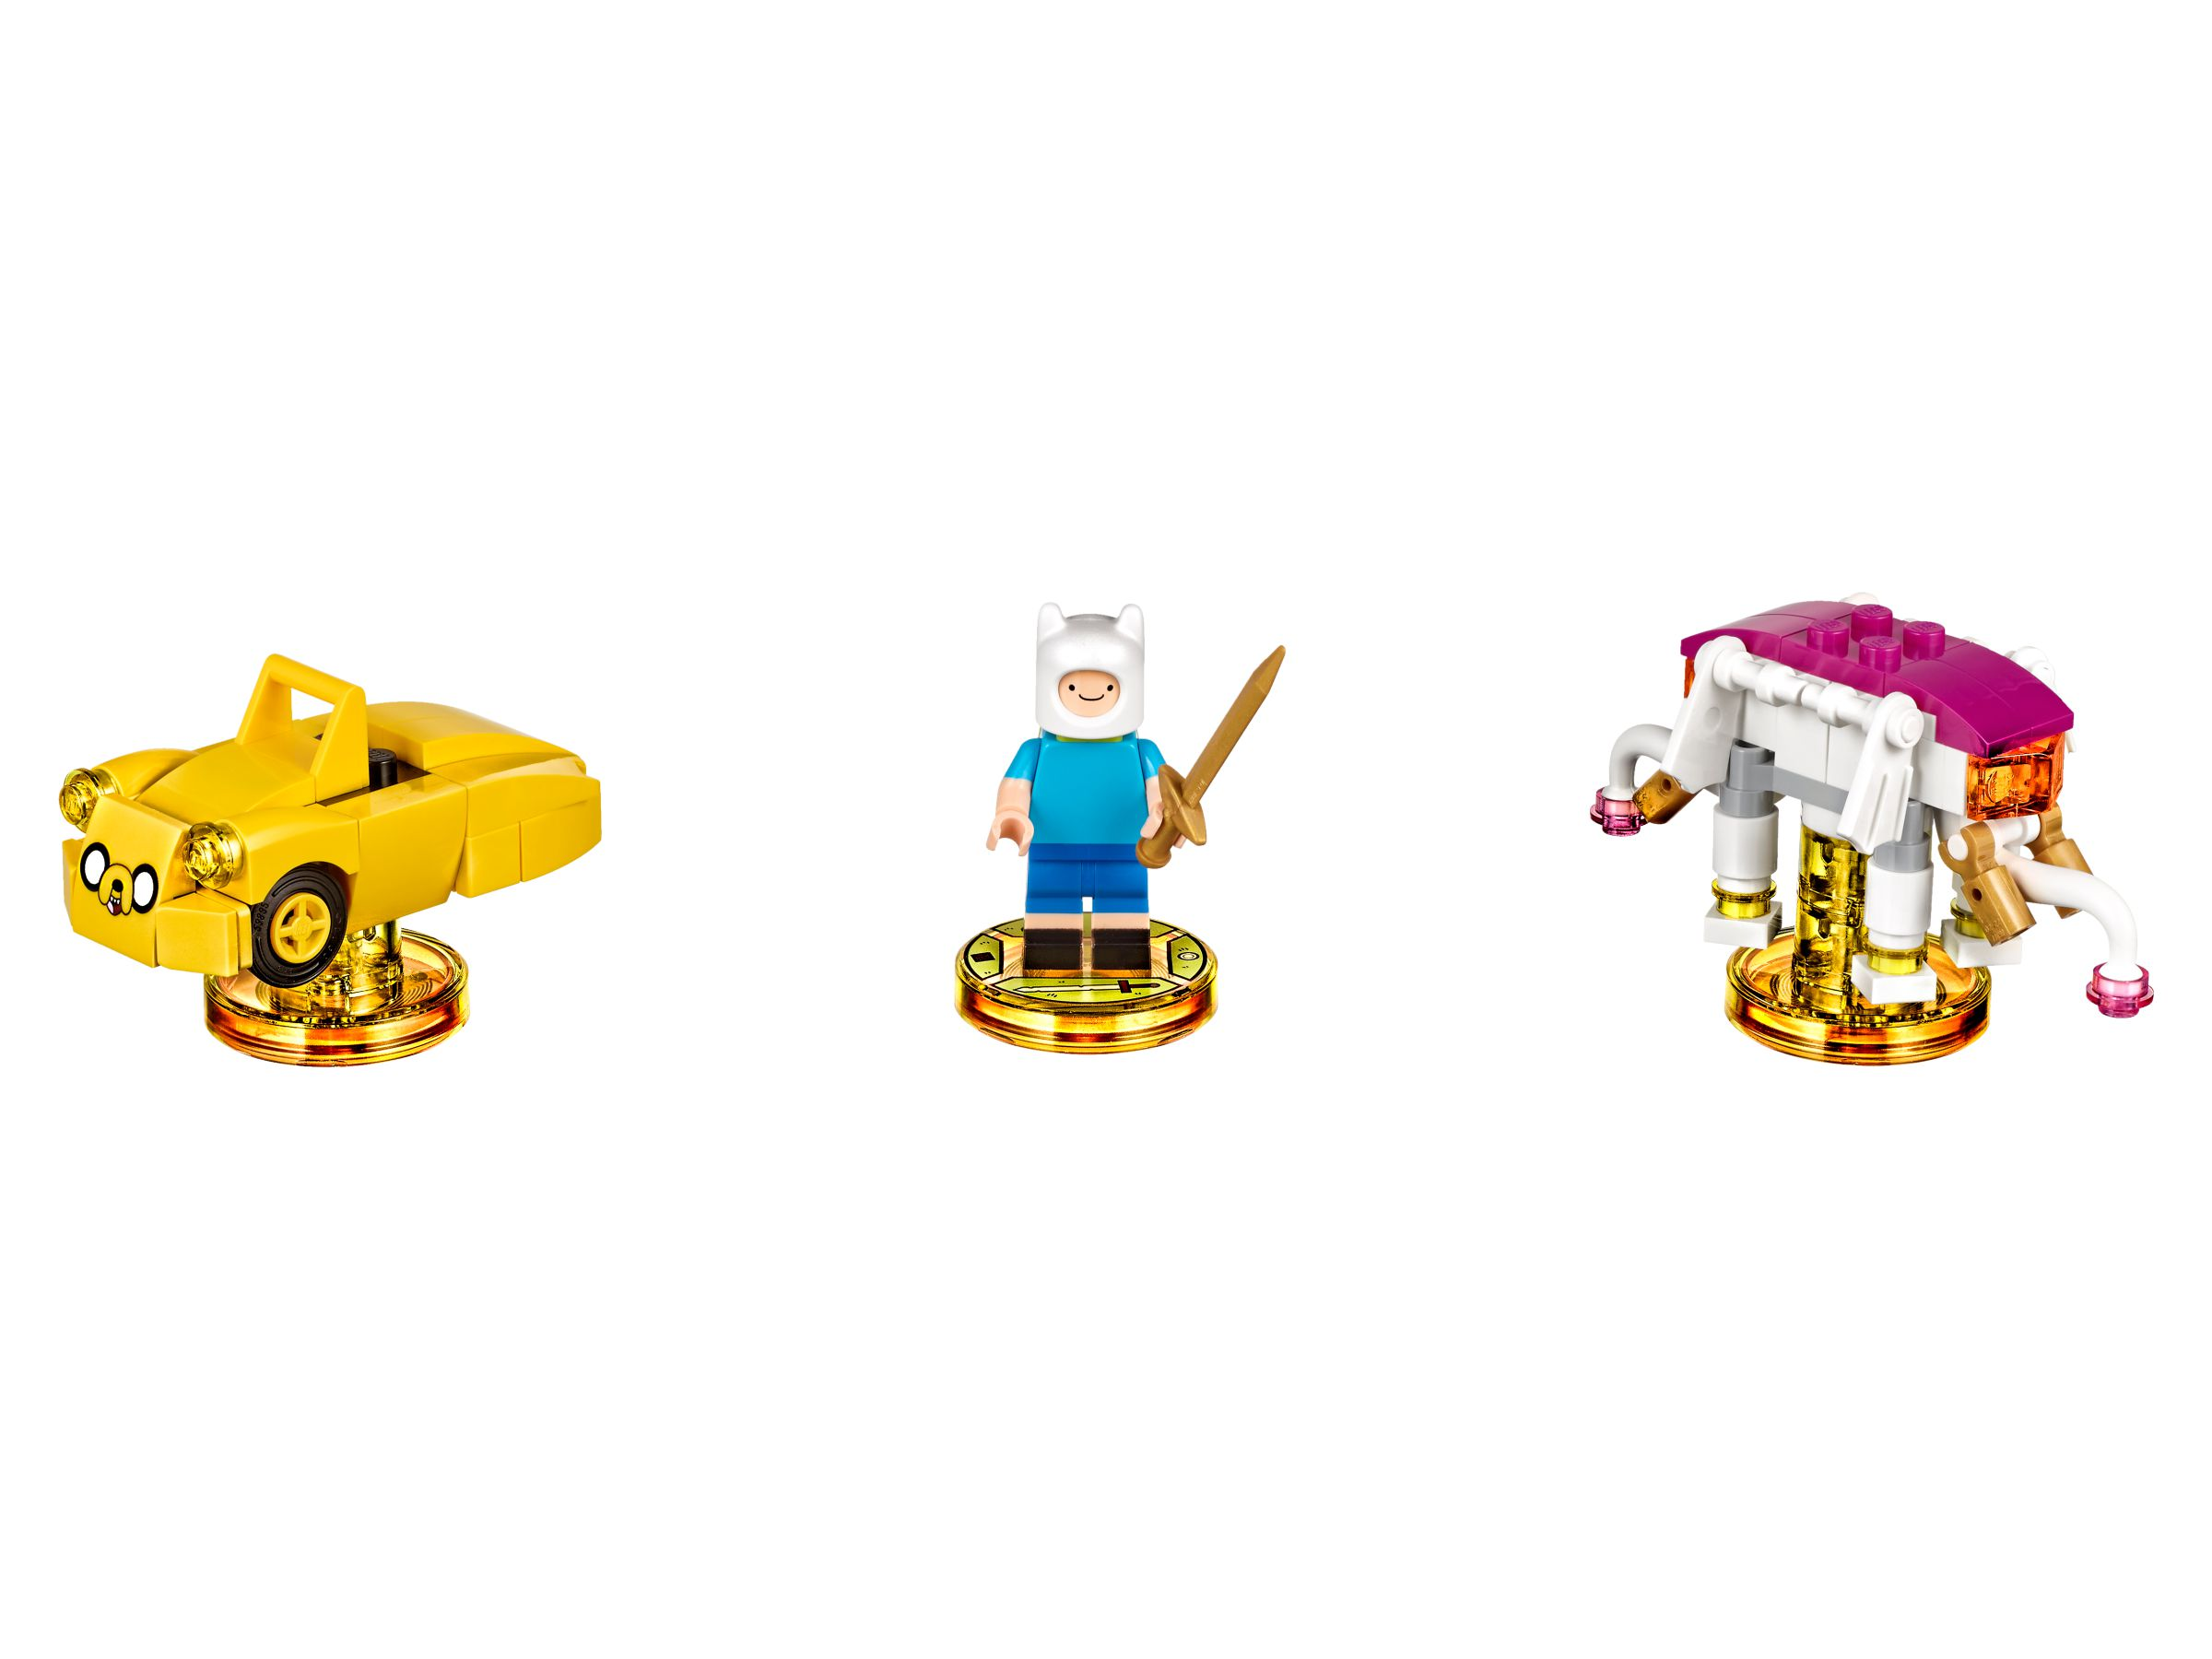 LEGO Dimensions 71245 Level Pack Adventure Time LEGO_71245.jpg